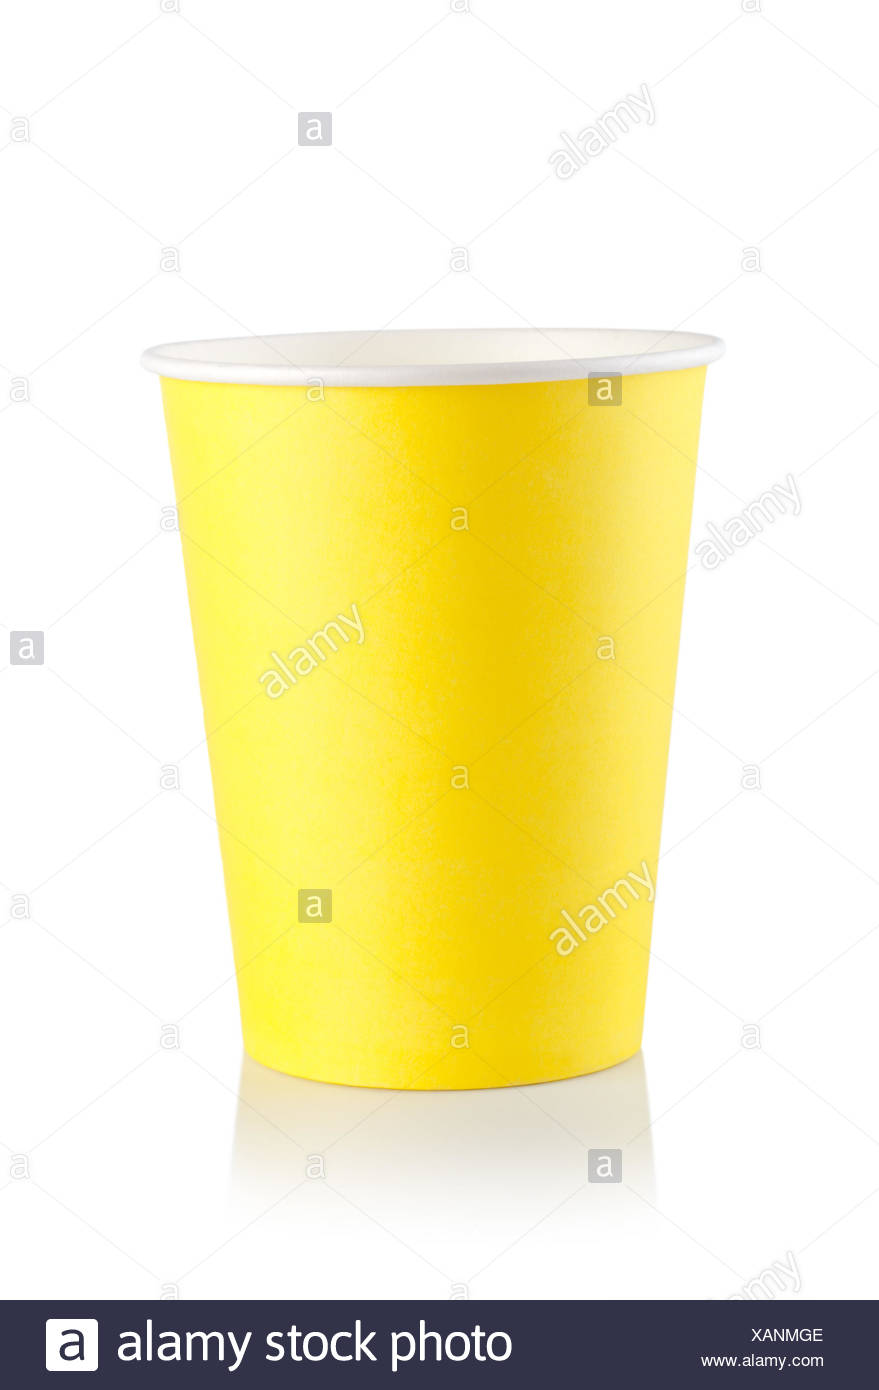 Yellow disposable cup isolated on a white background. Stock Photo